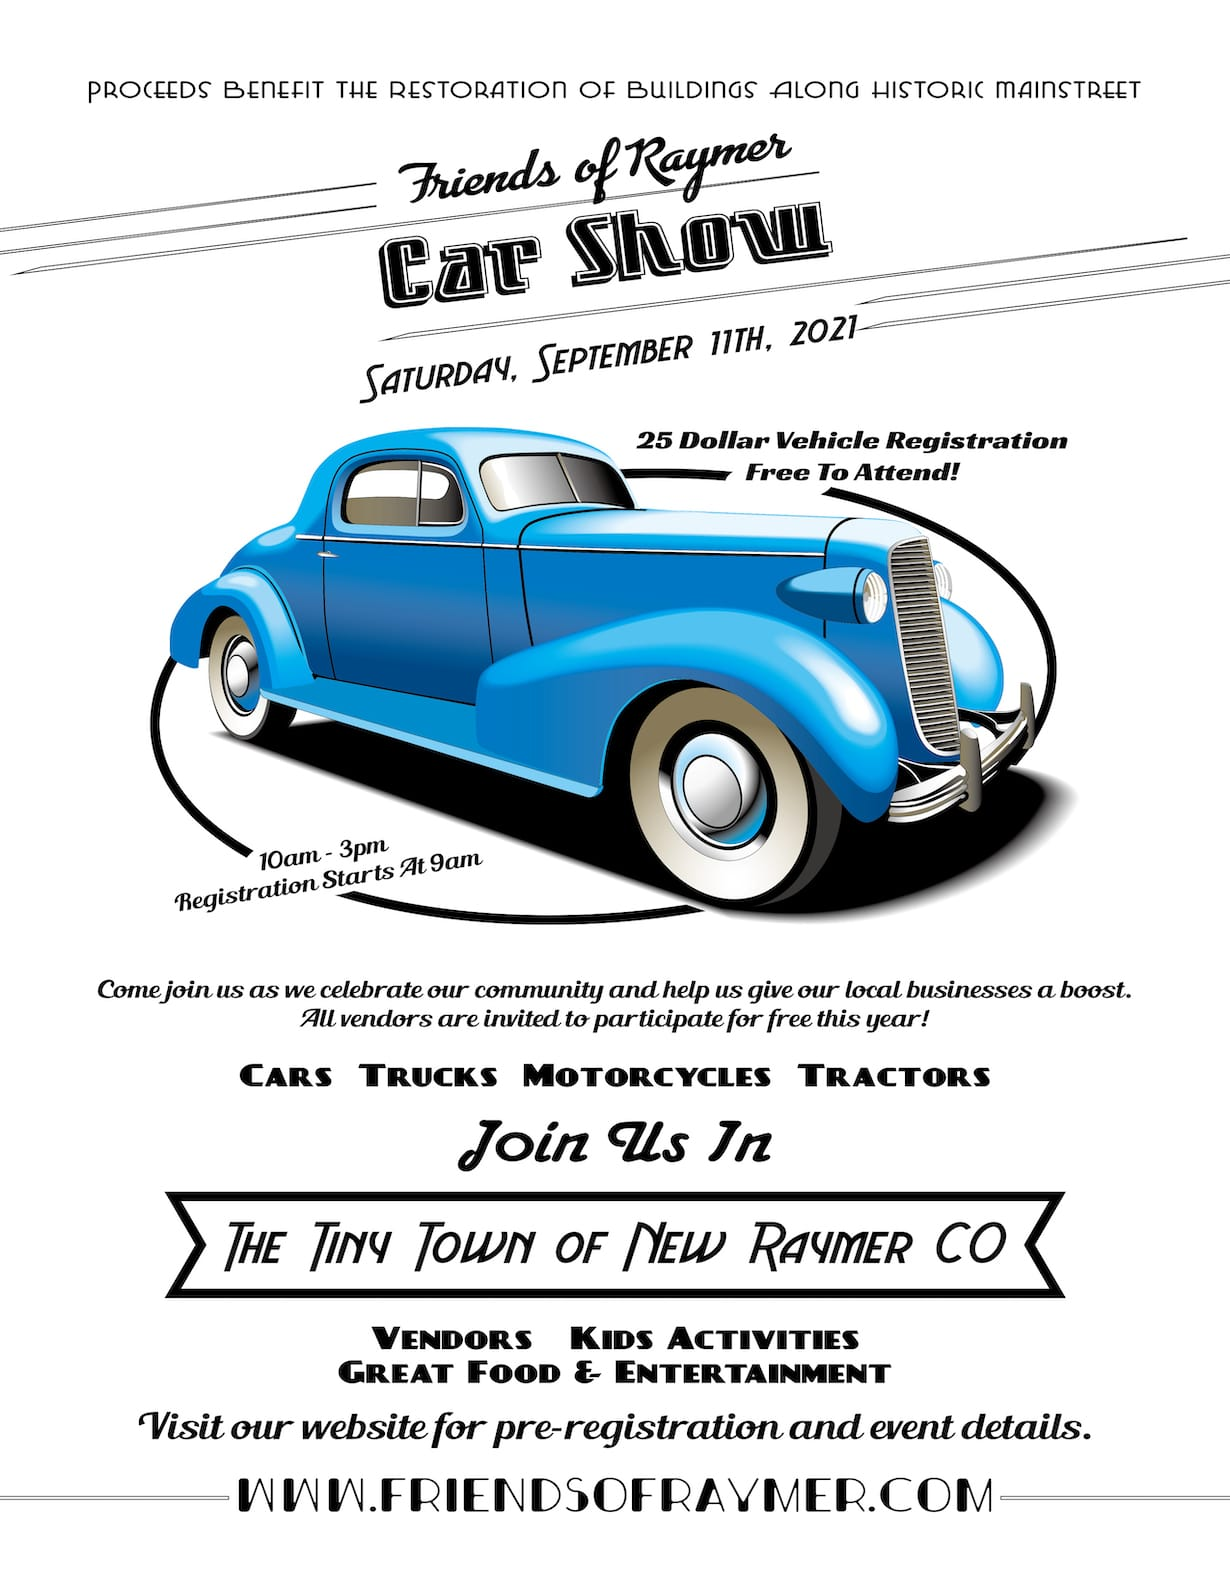 Image of the flyer for the 2021 Friends of Raymer Car Show in Colorado